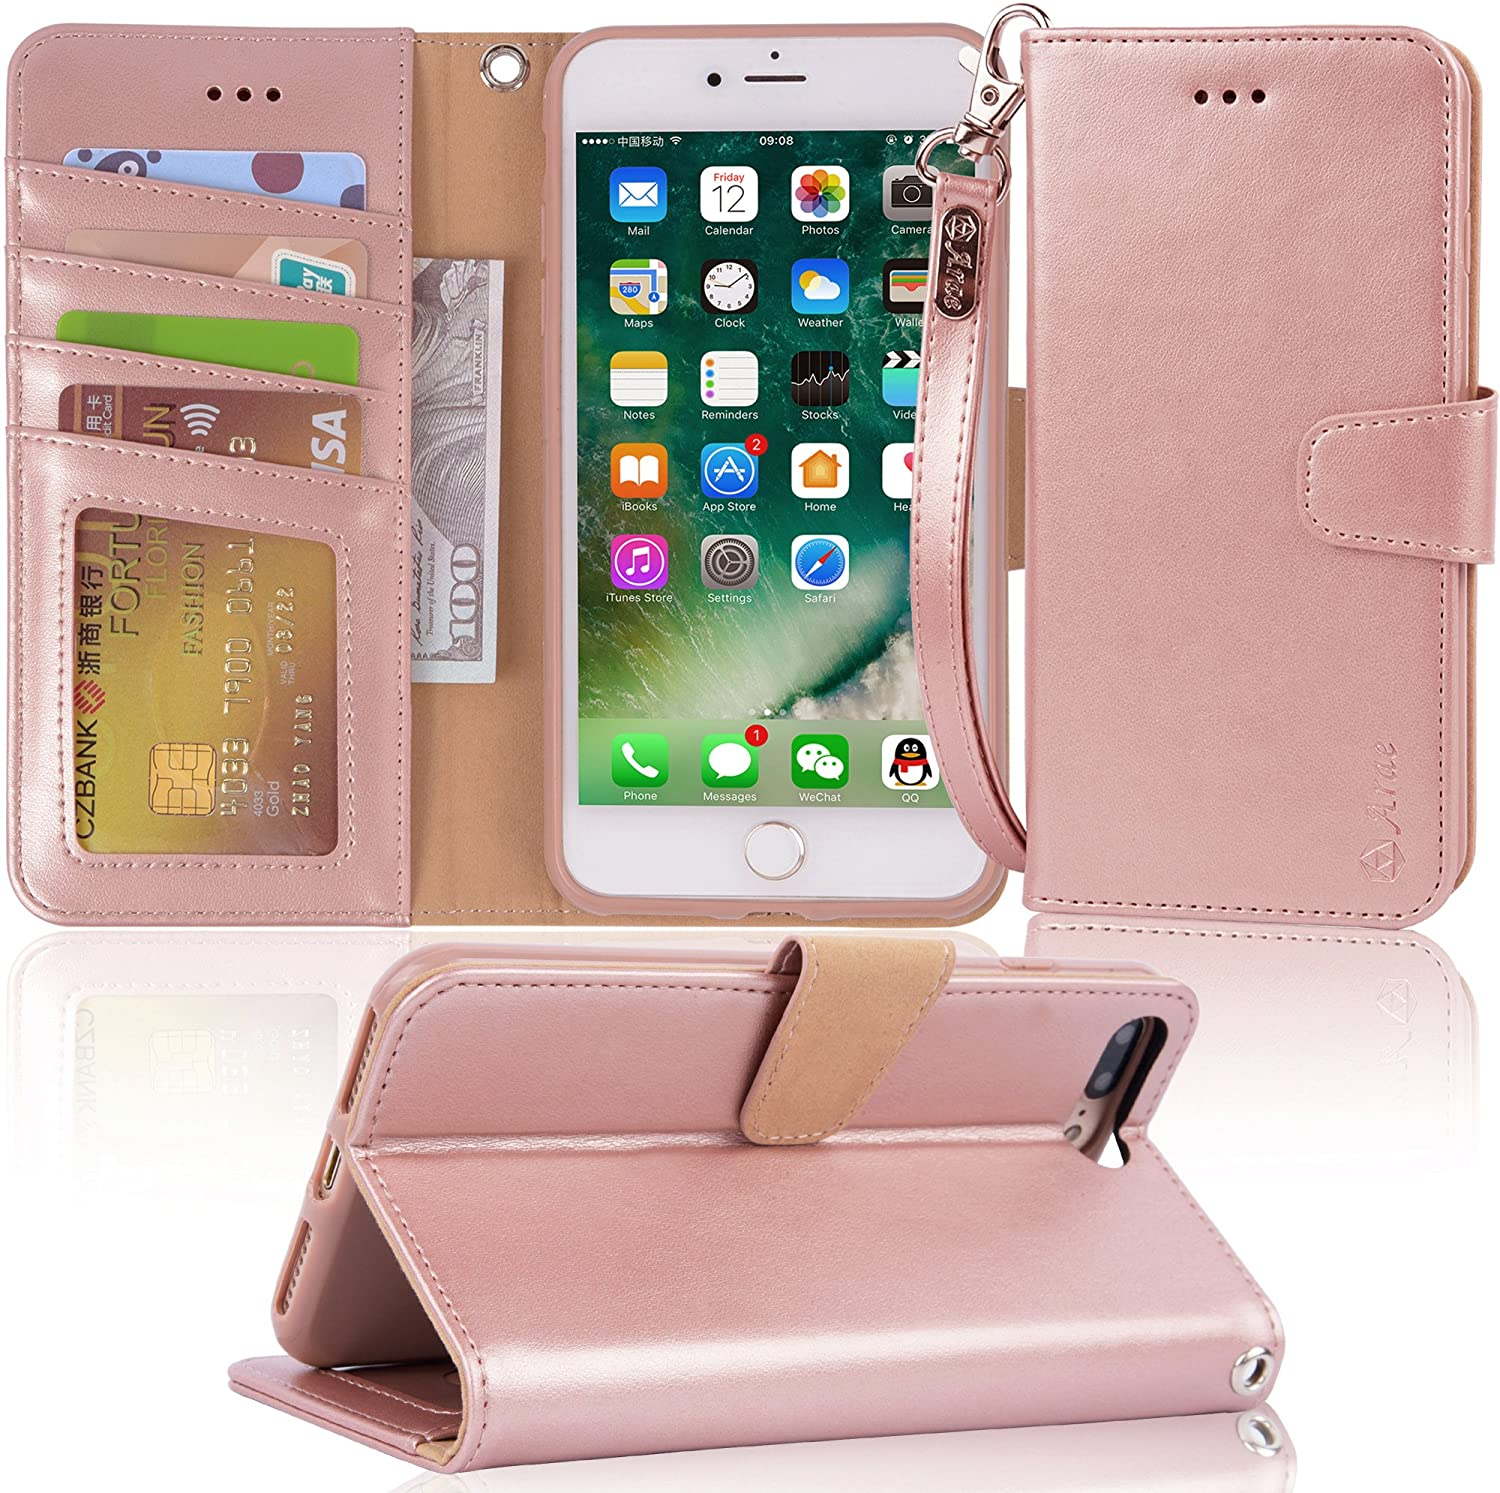 "Arae Case for iPhone 7 Plus/iPhone 8 Plus, Premium PU Leather Wallet Case with Kickstand and Flip Cover for iPhone 7 Plus (2016) / iPhone 8 Plus (2017) 5.5"" (not for iPhone 7/8) - Rose Gold"